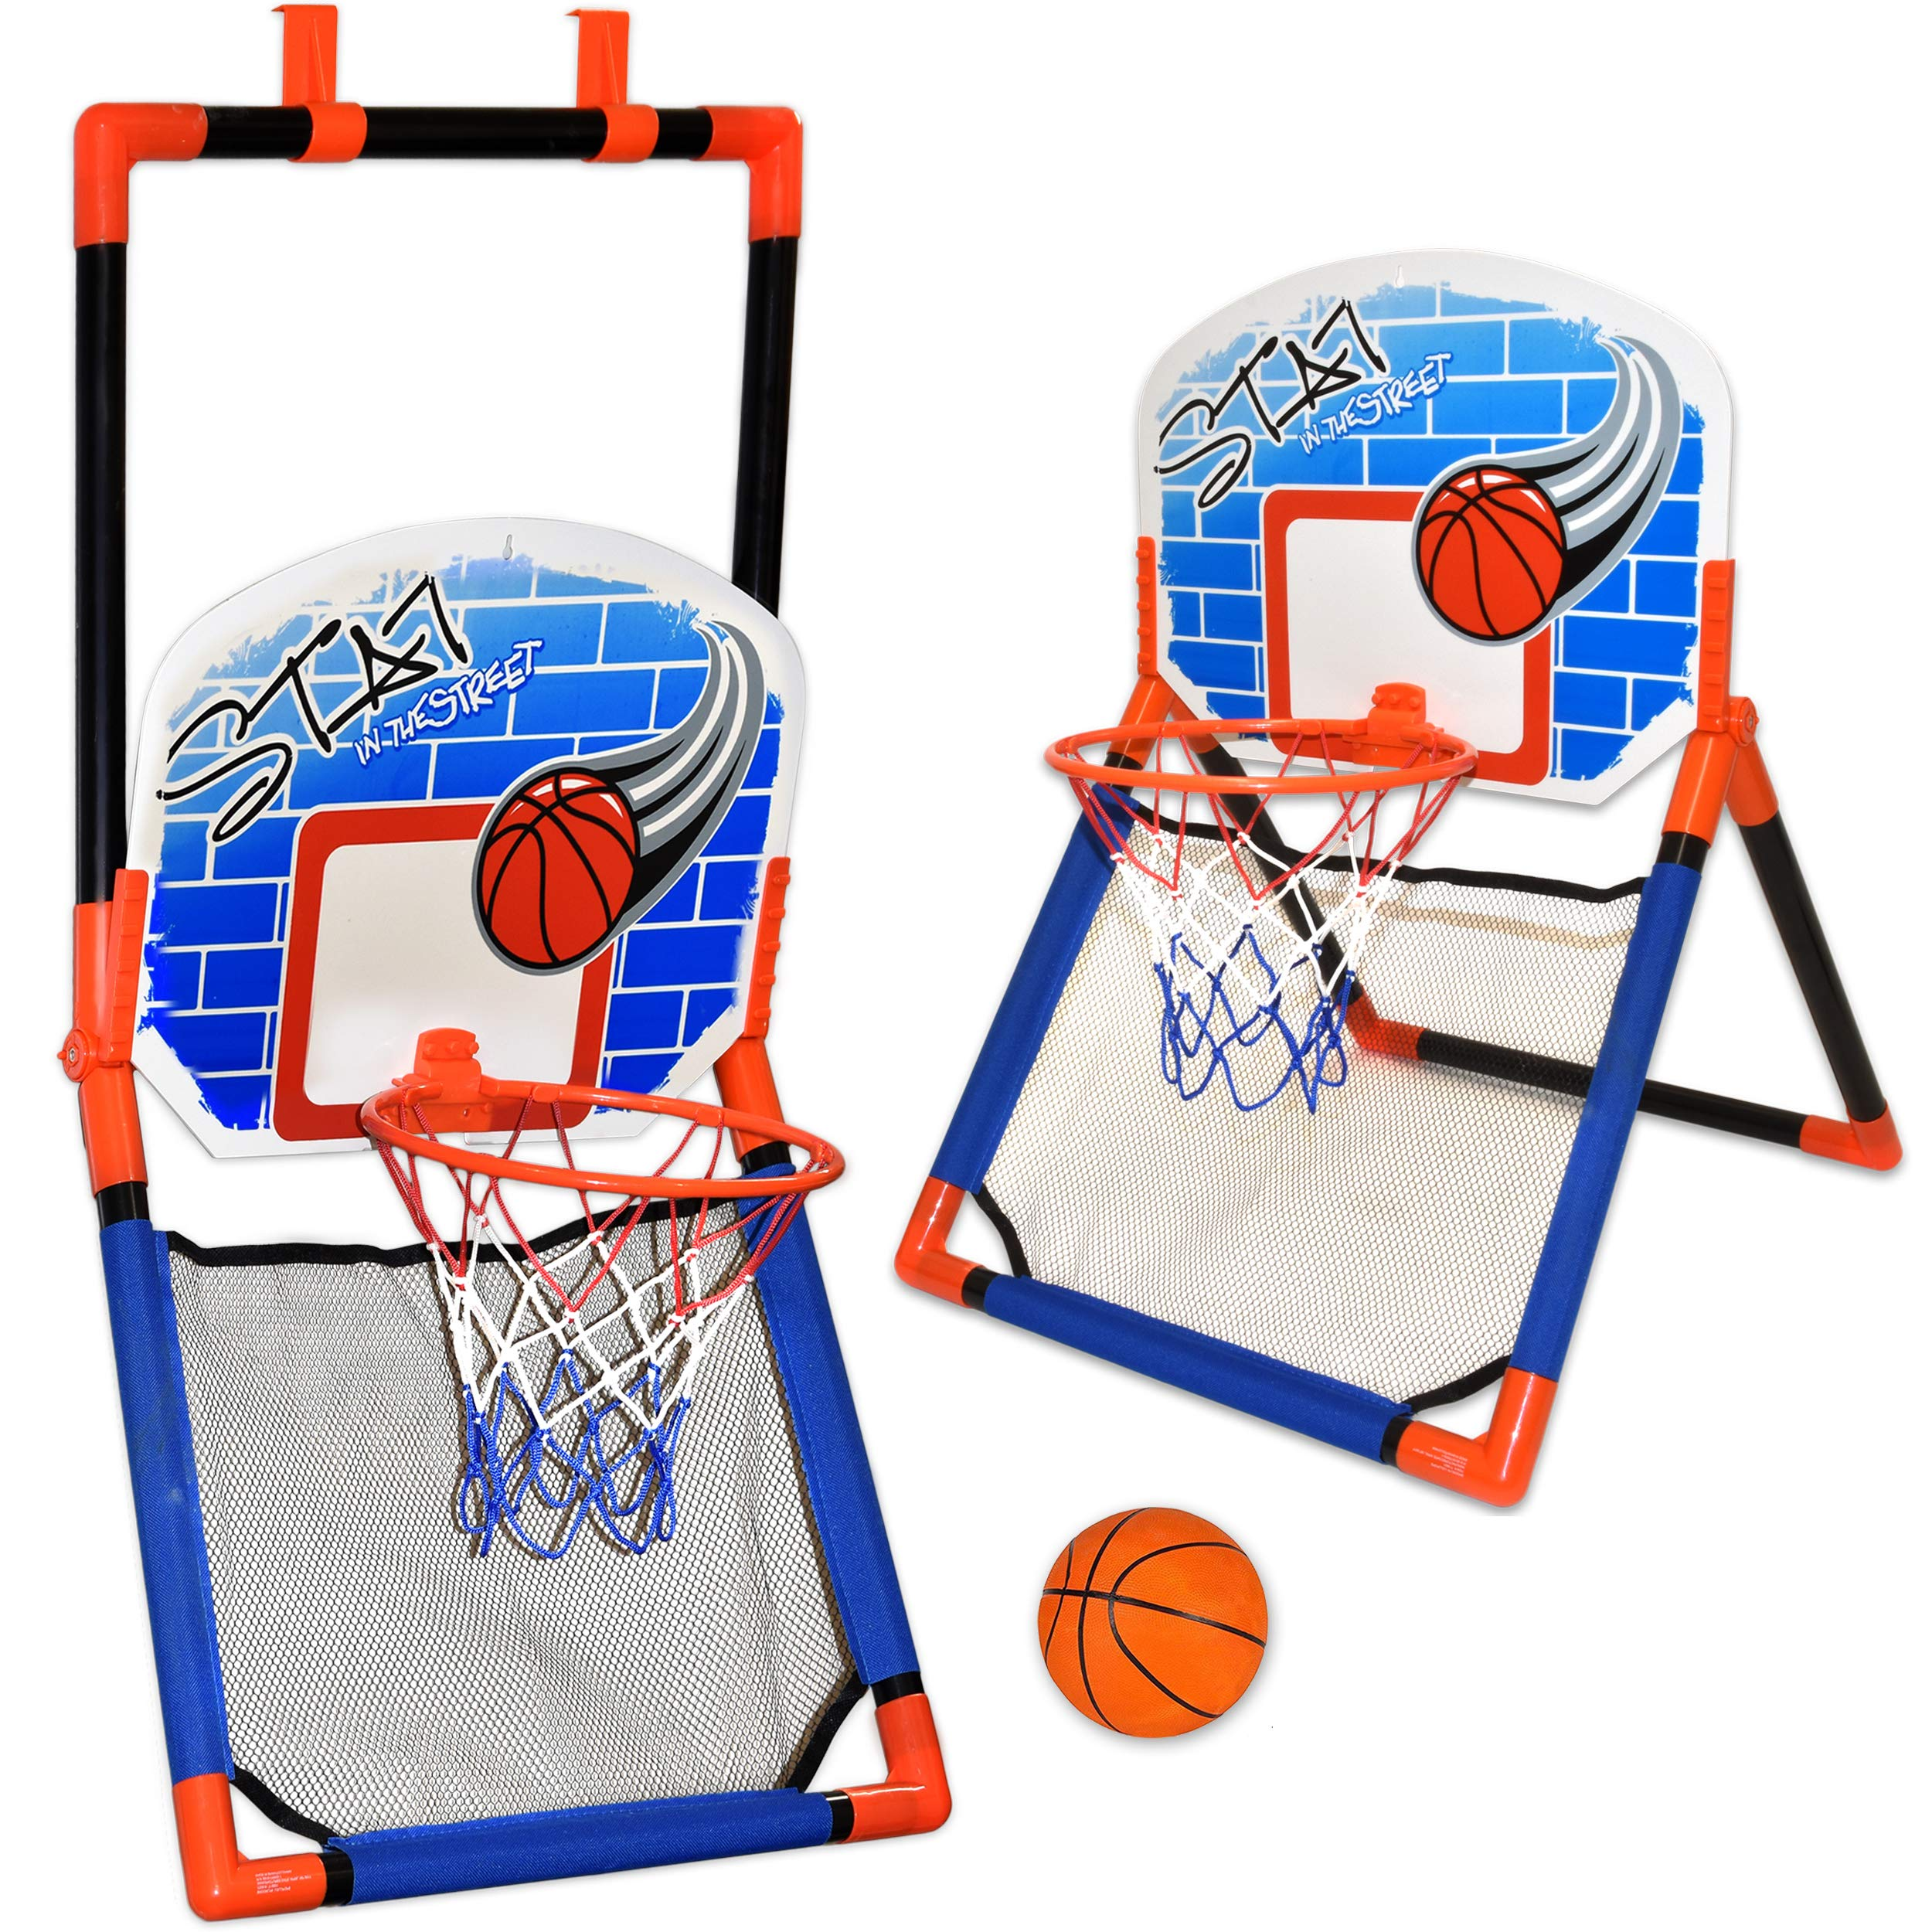 Basketball Hoop for Kids - 2 in 1 Over The Door and Floor Basketball Play Set for Toddlers, Boys and Girls Outdoor and Indoor Sport, Ball Included by Number 1 in Gadgets